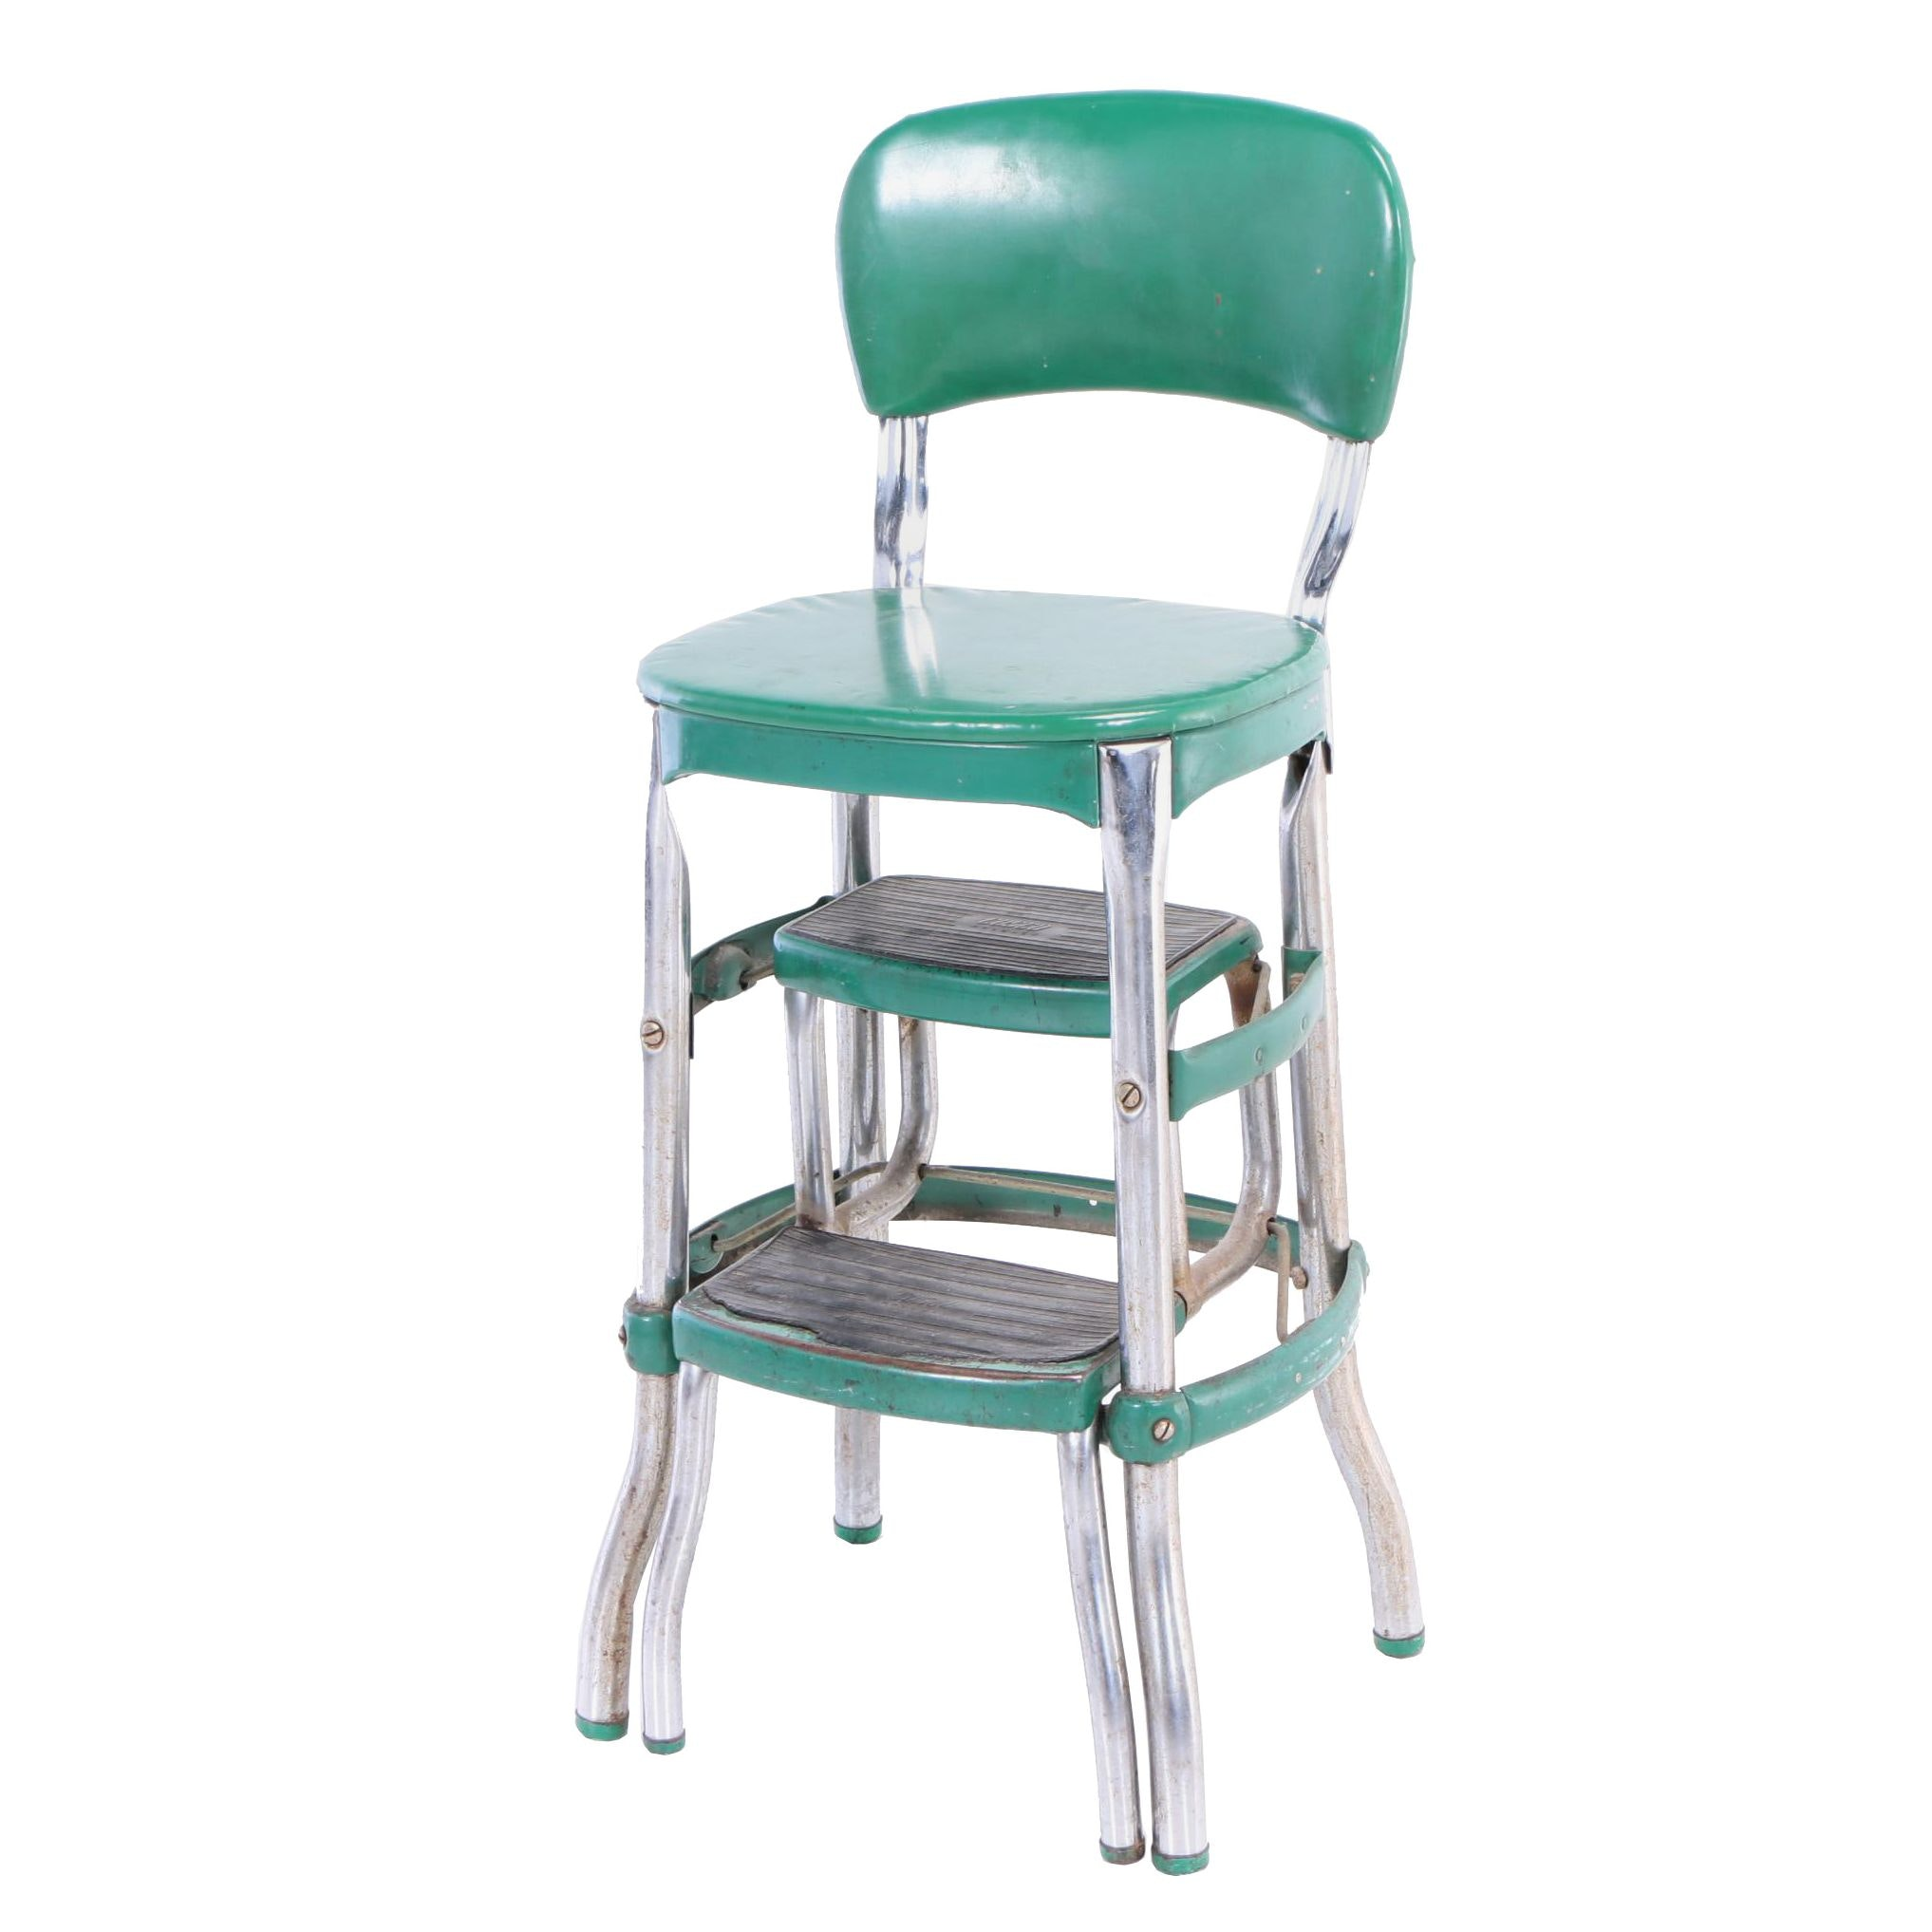 Cosco, Chromed and Green-Painted Steel Step Stool, Mid 20th Century